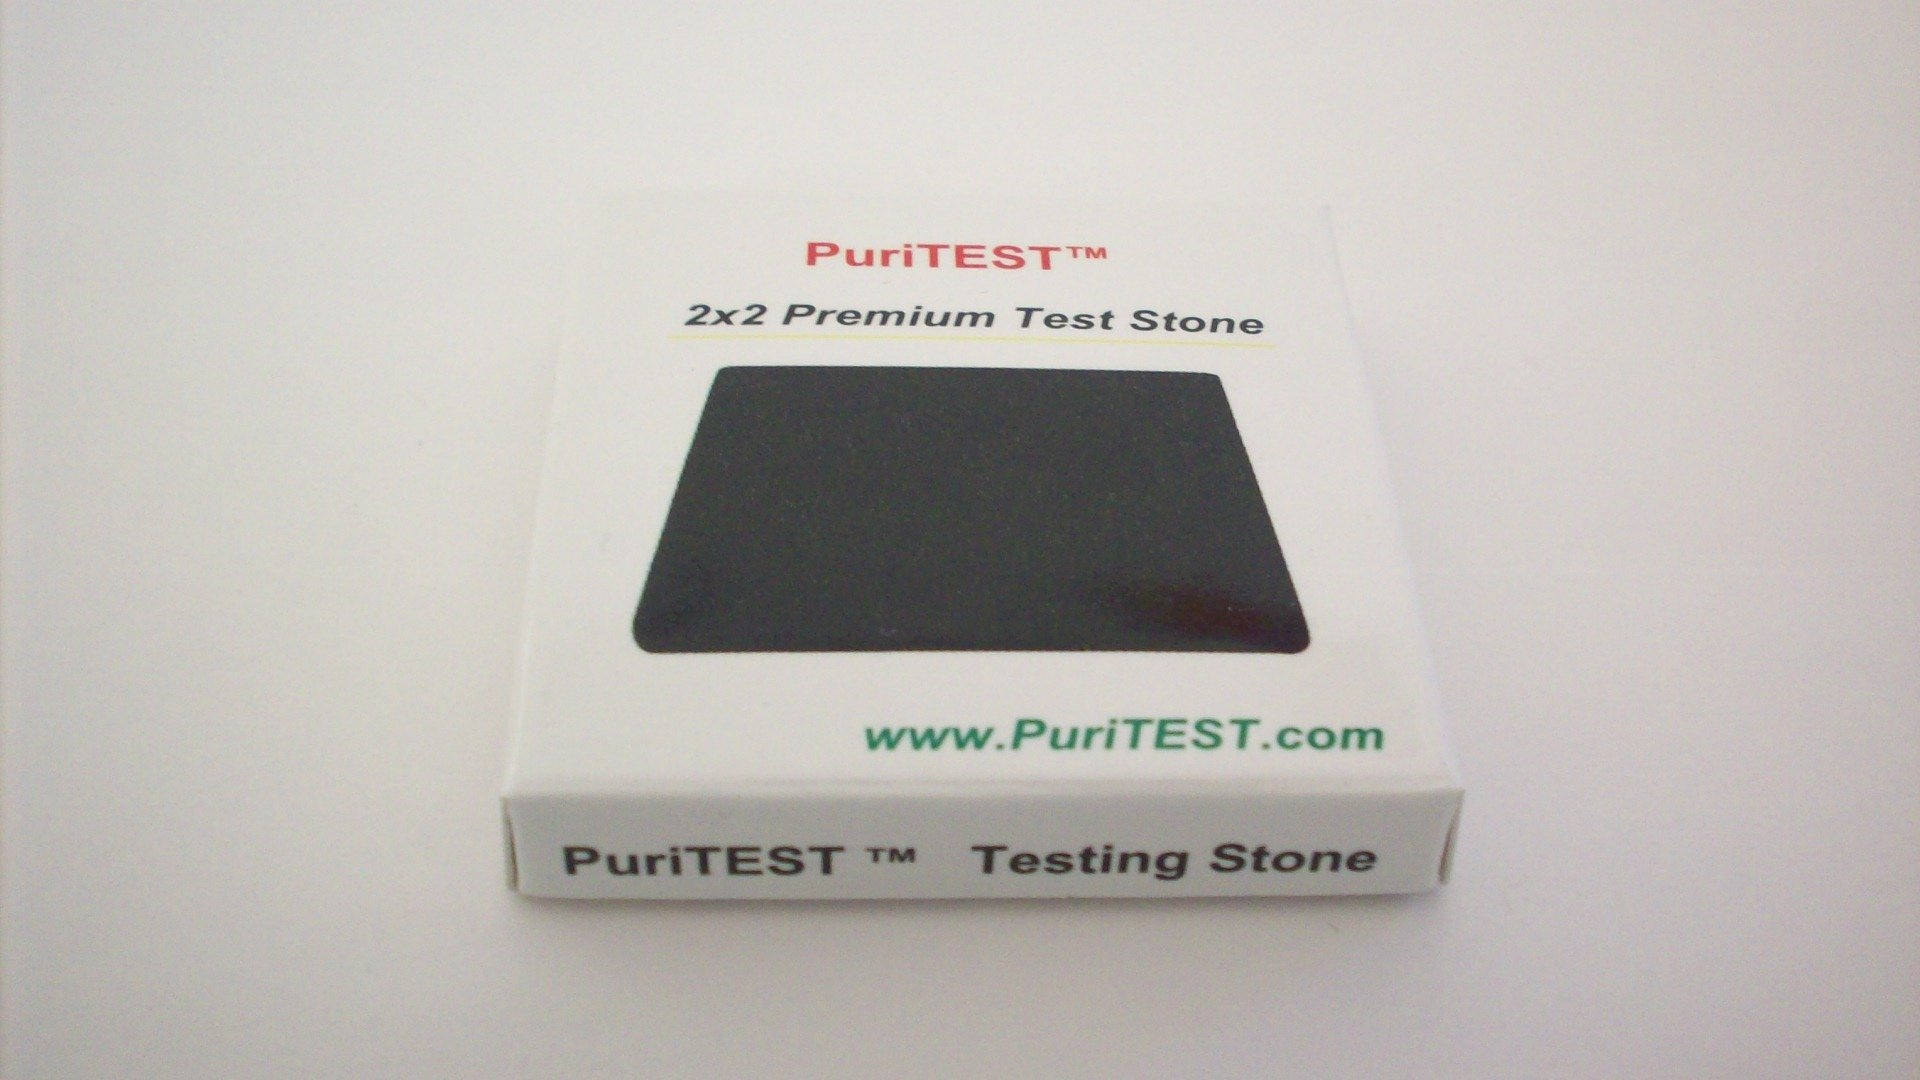 PuriTEST Purity Pack for testing Diamonds Gold Silver Platinum. Electronic Machine by PuriTEST (Image #4)